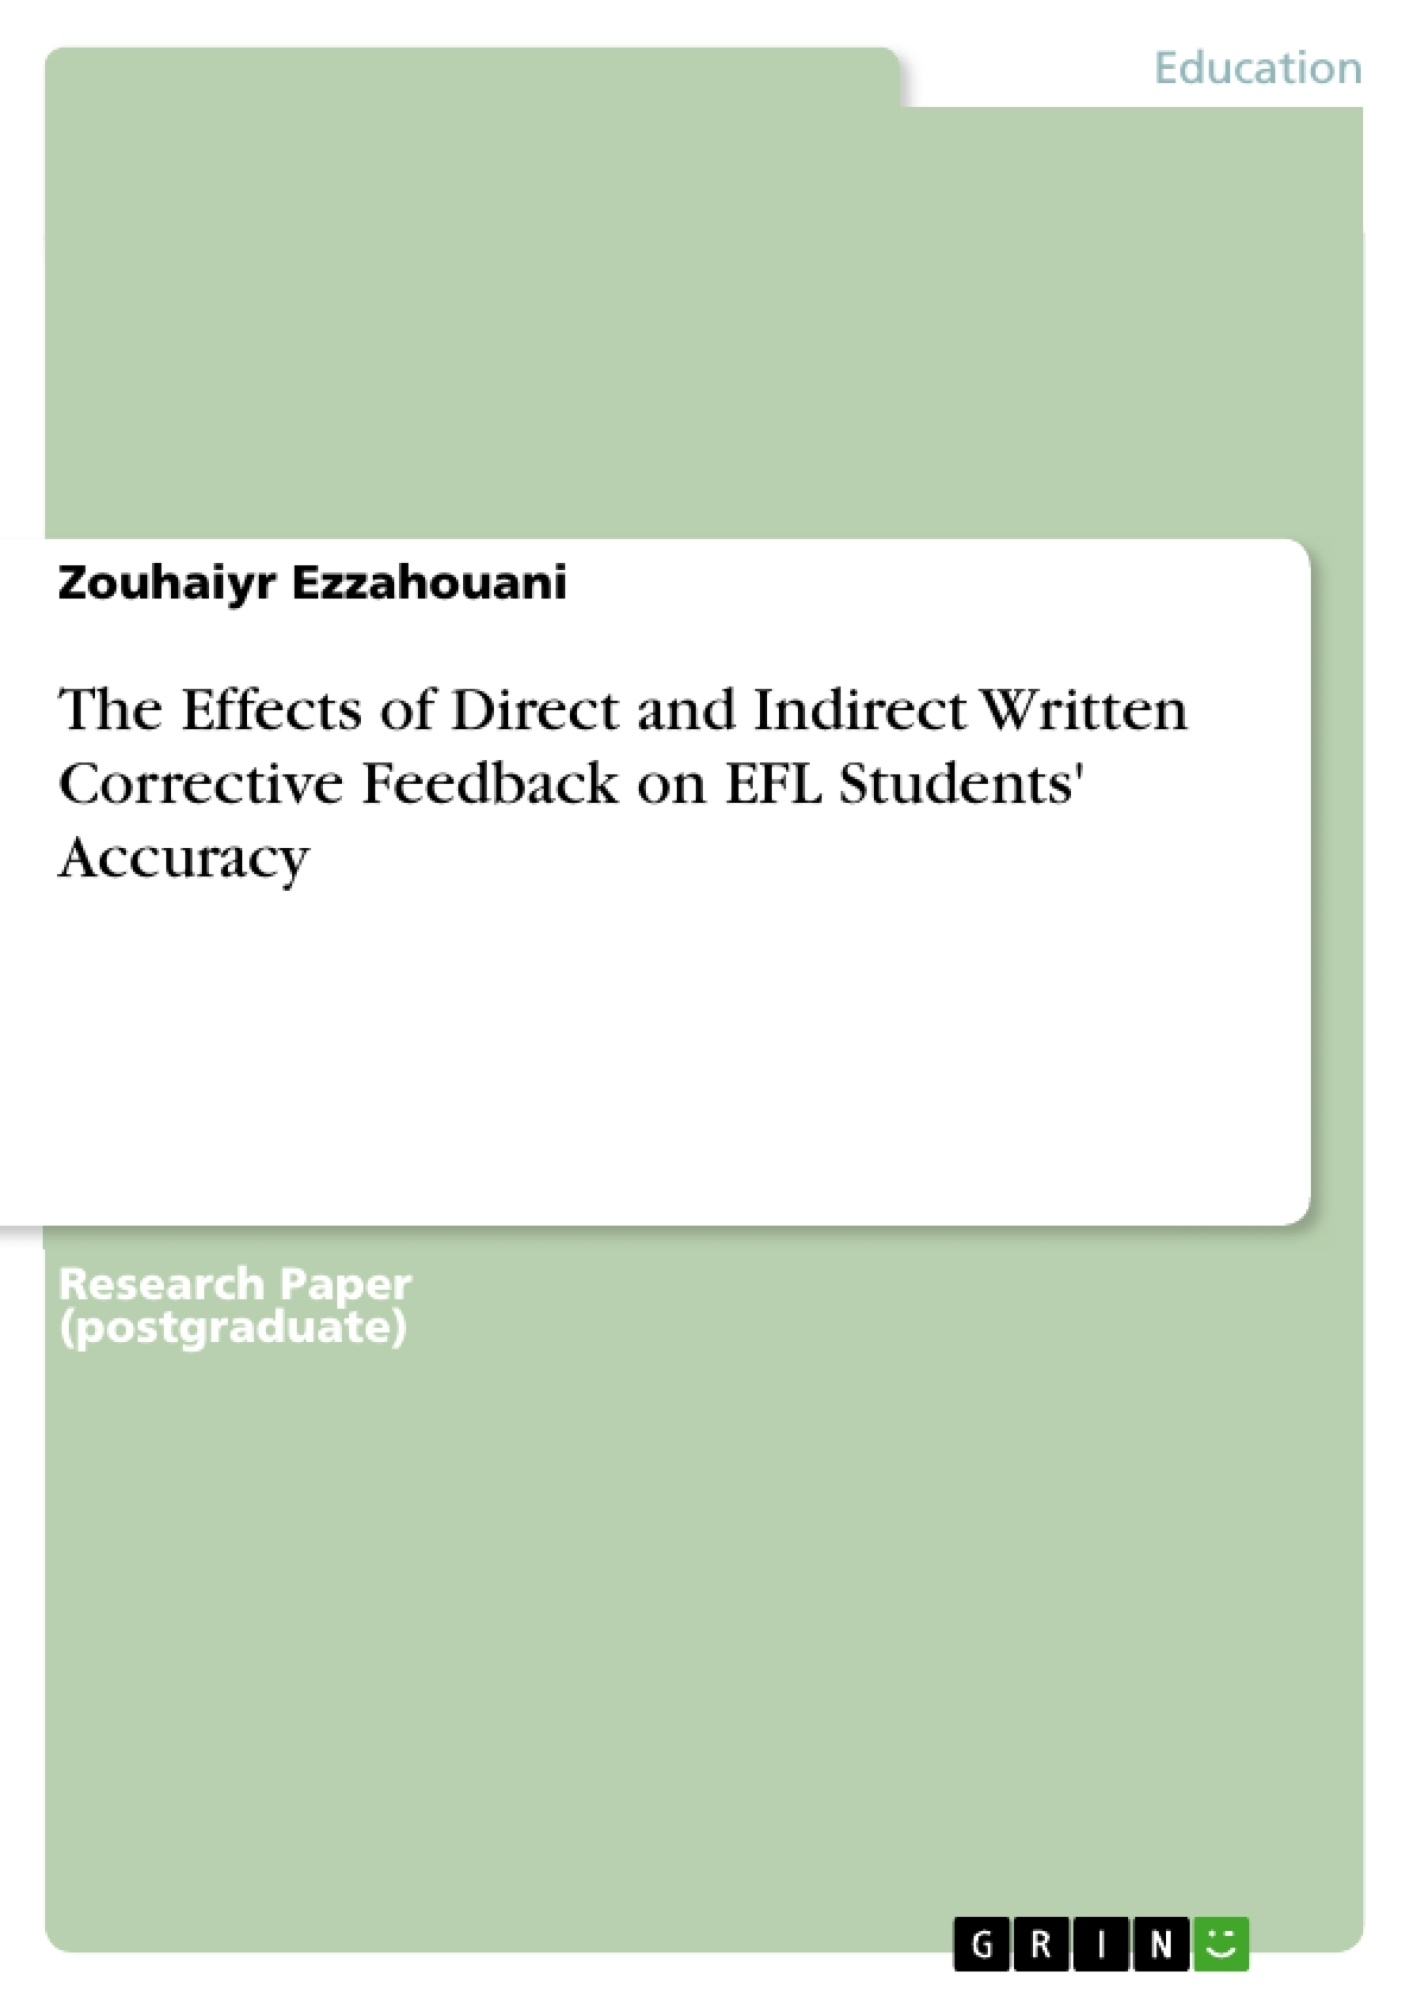 Title: The Effects of Direct and Indirect Written Corrective Feedback on EFL Students' Accuracy